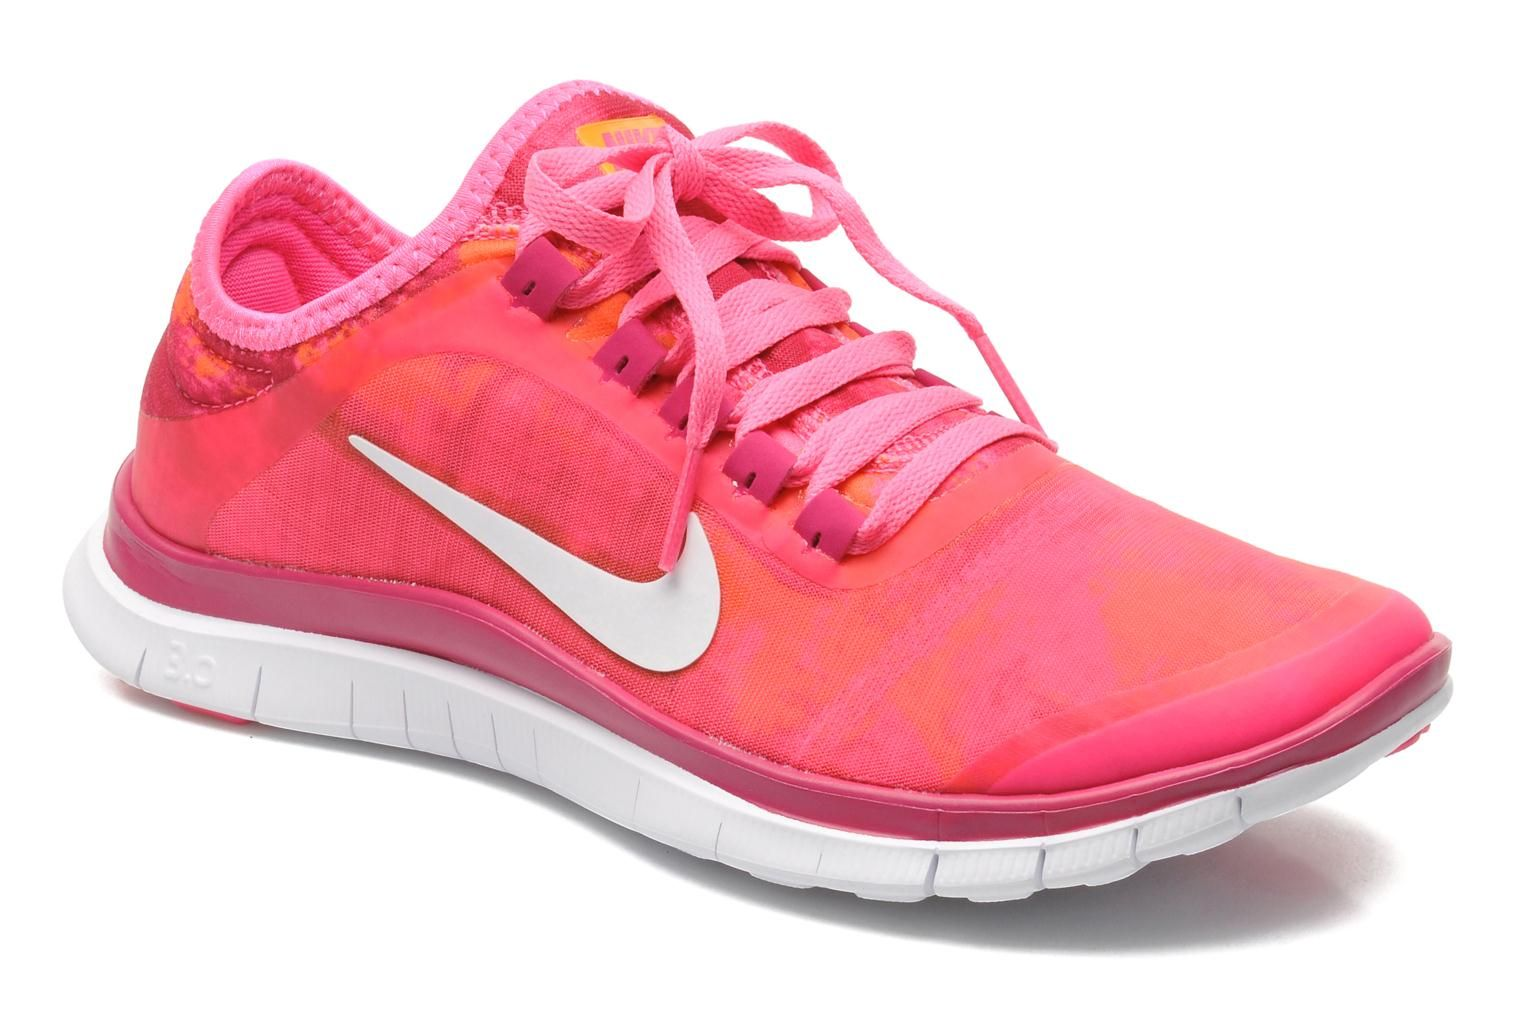 Nike Wmns Nike Free 3.0 V5 Ext Prnt | sporty | Pinterest | Nike, Pink and  Trainers